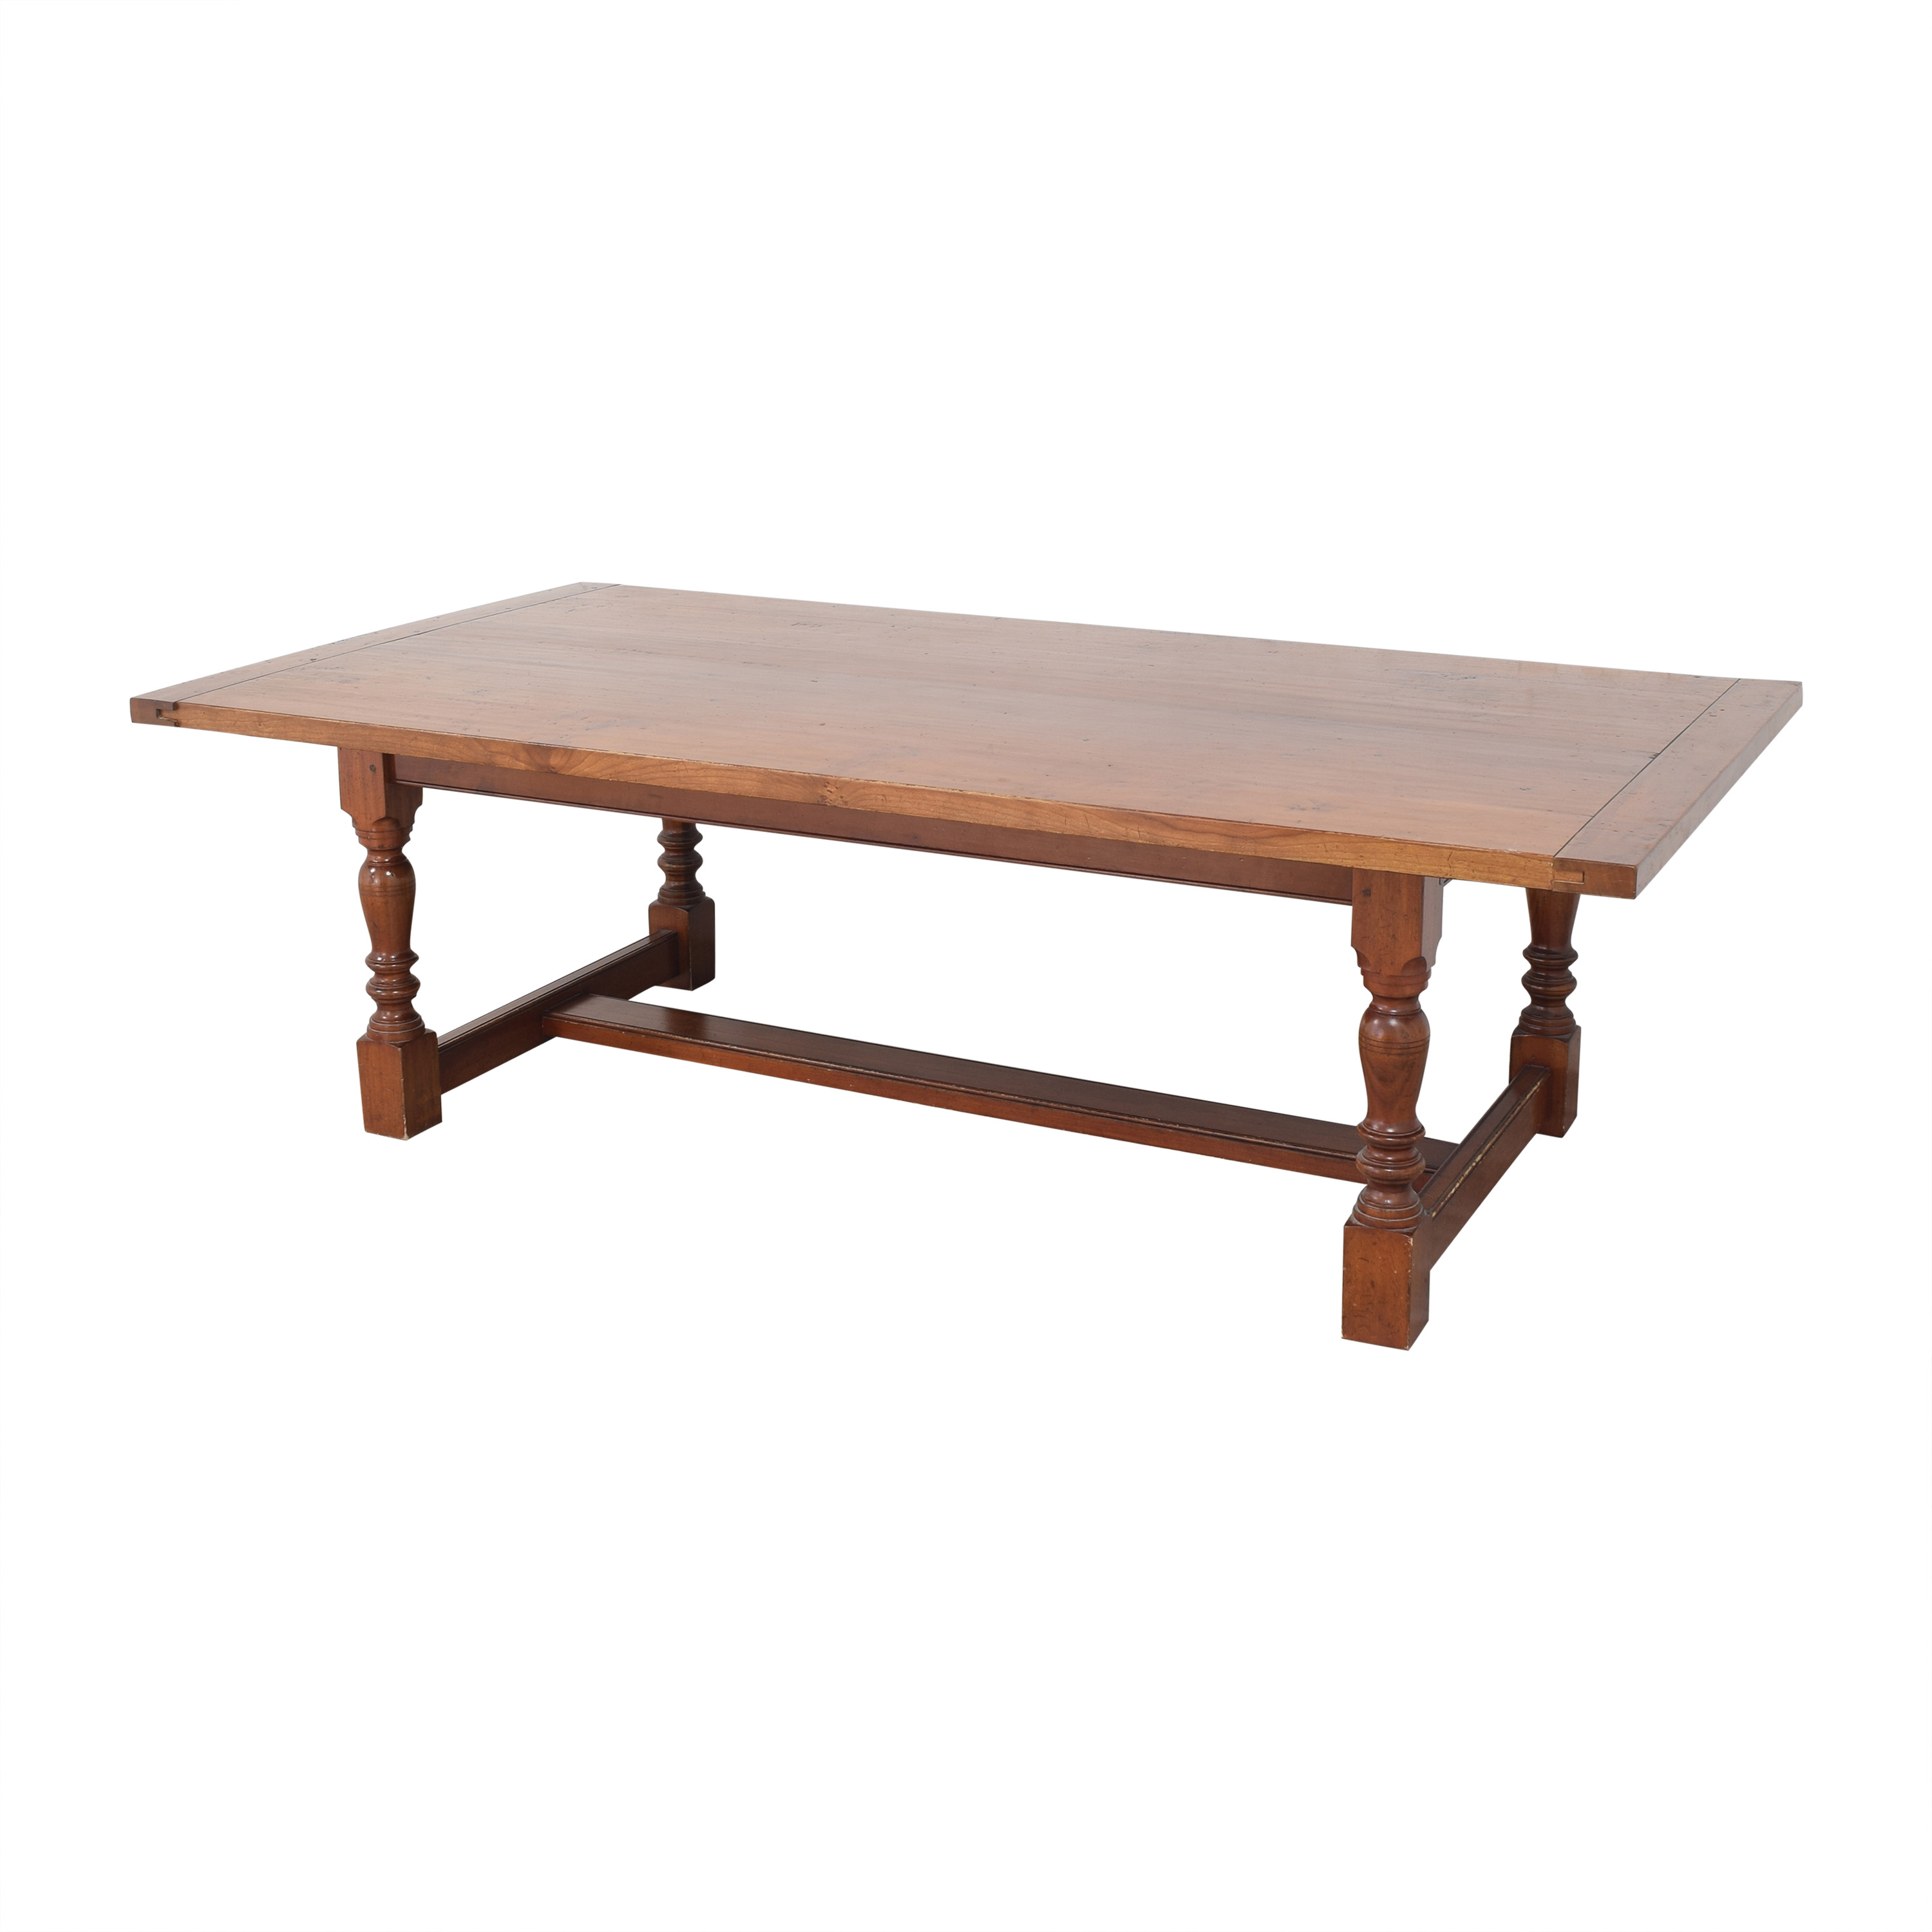 Antique Farmhouse-Style Dining Table Dinner Tables